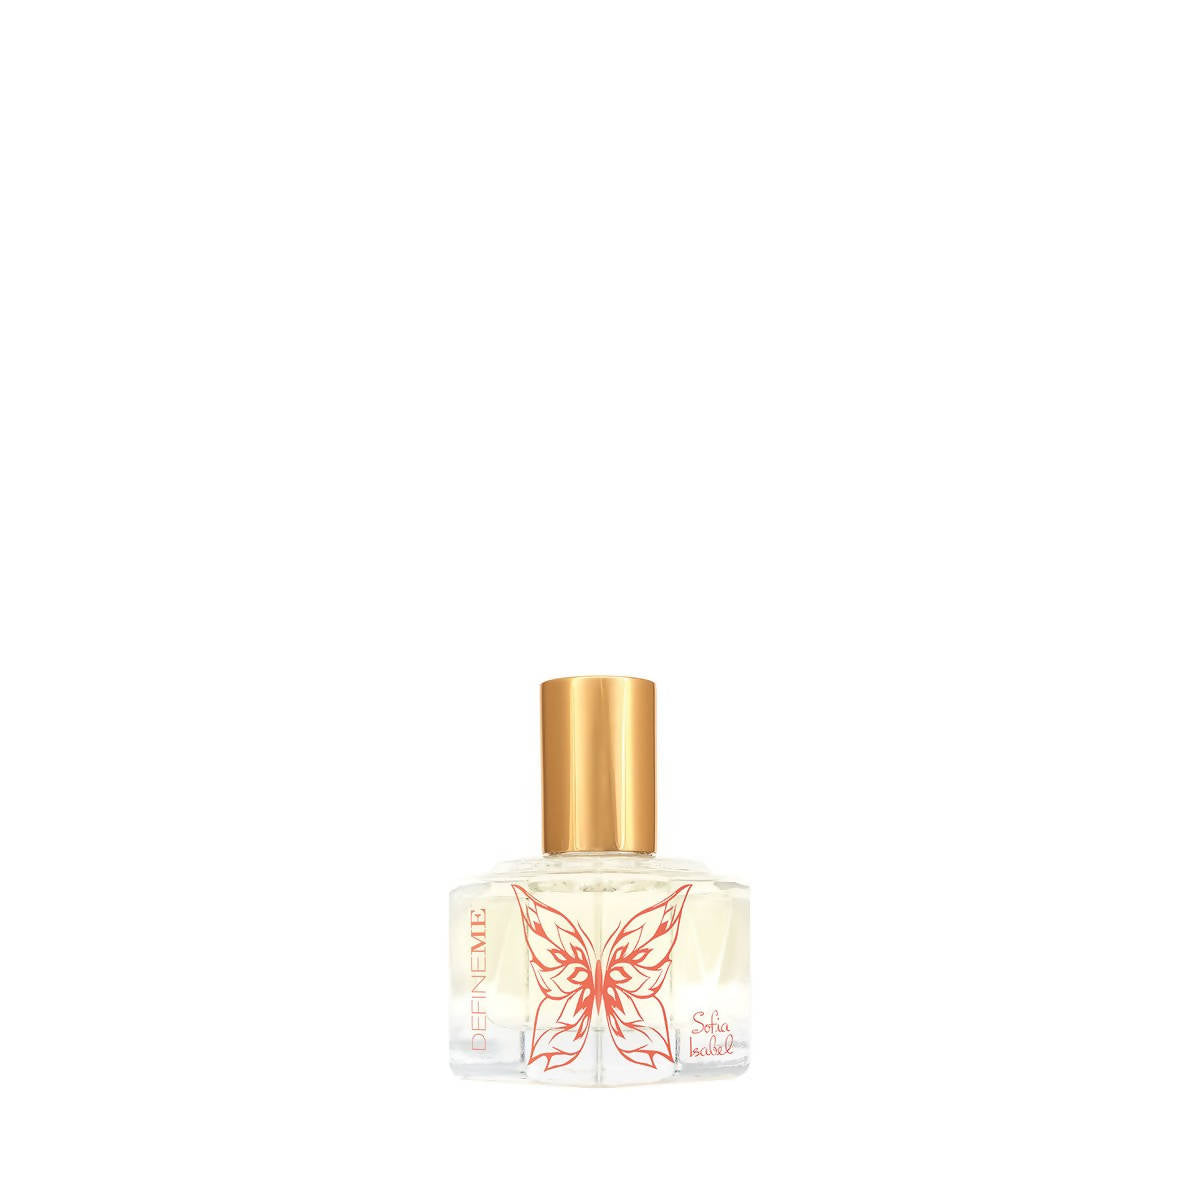 SOFIA ISABEL NATURAL PERFUME OIL - TESTER